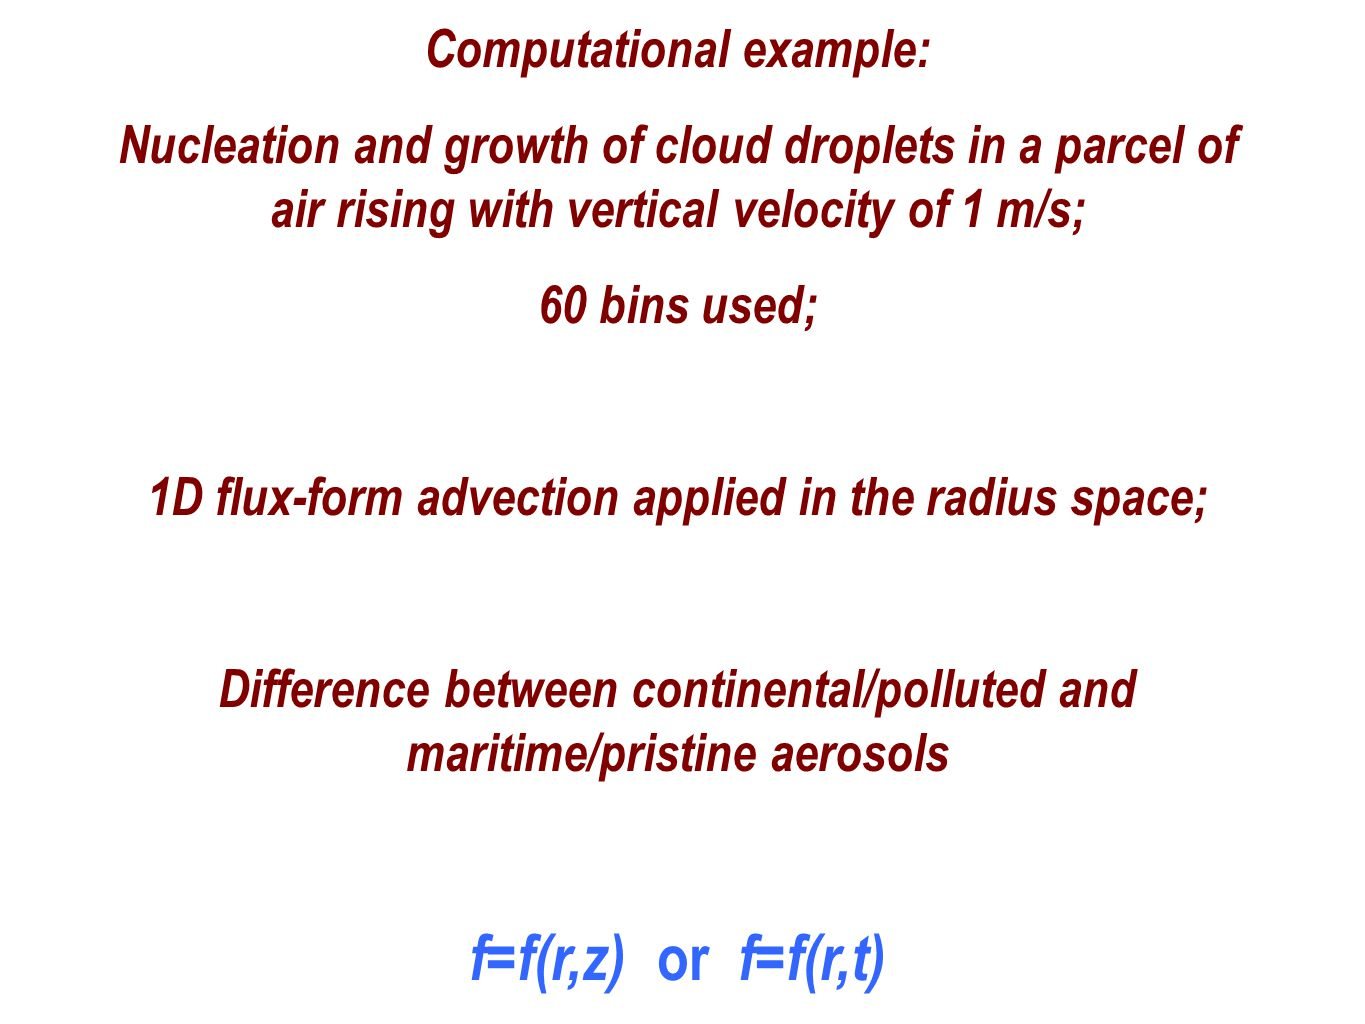 Computational example: Nucleation and growth of cloud droplets in a parcel of air rising with vertical velocity of 1 m/s; 60 bins used; 1D flux-form advection applied in the radius space; Difference between continental/polluted and maritime/pristine aerosols f=f(r,z) or f=f(r,t)